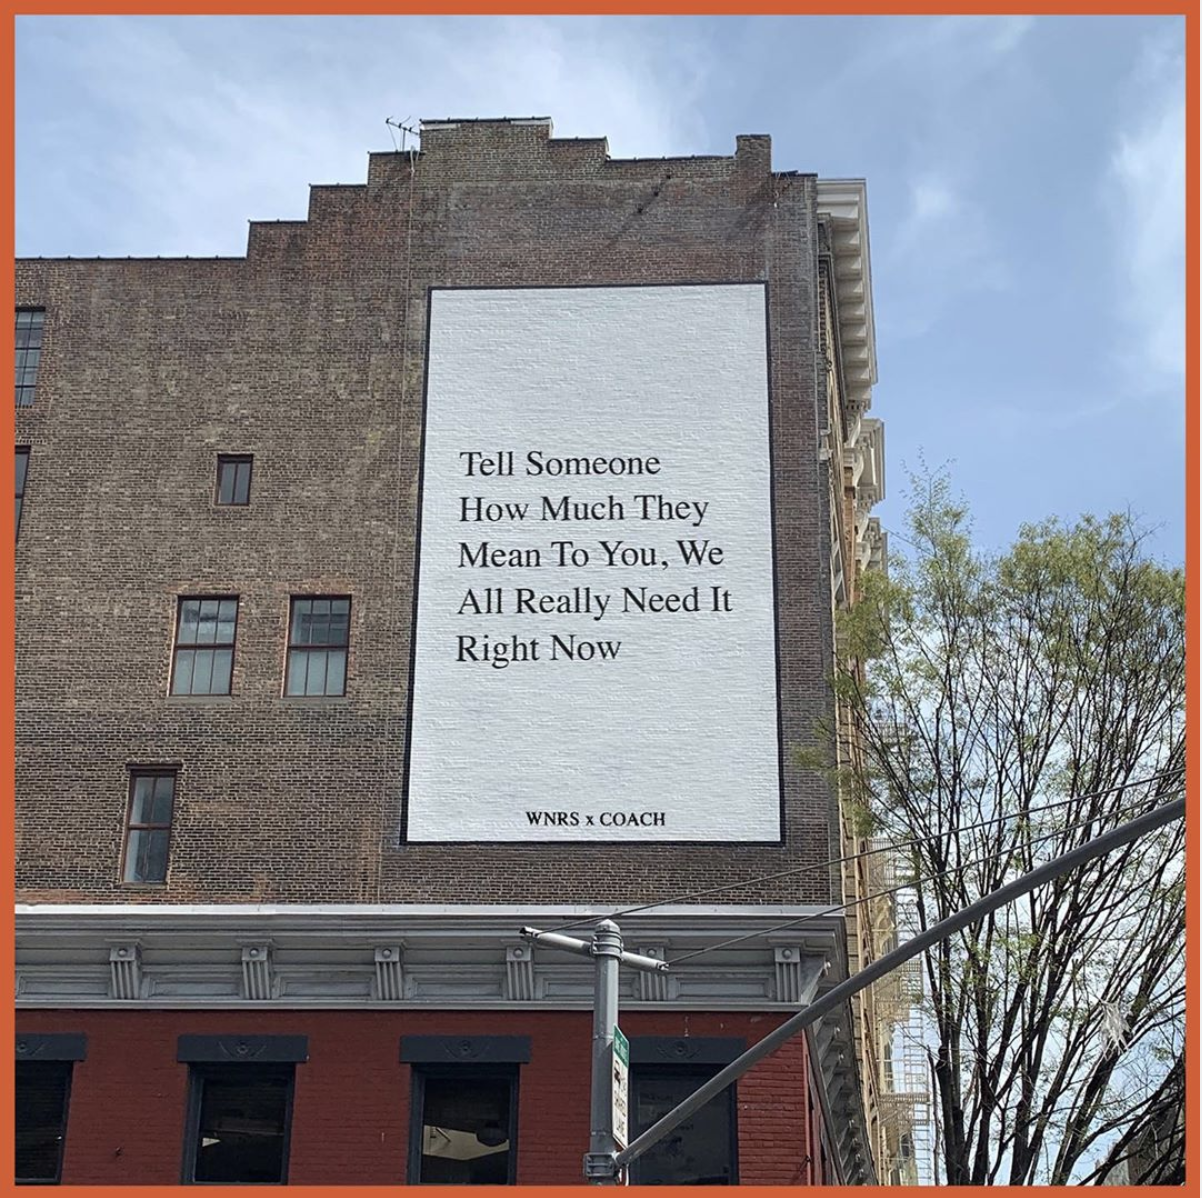 """A brick building with the message """"Tell Someone How Much They Mean To You, We All Really Need it Right Now"""" painted on it as part of Coach's partnership with We're Not Really Strangers."""